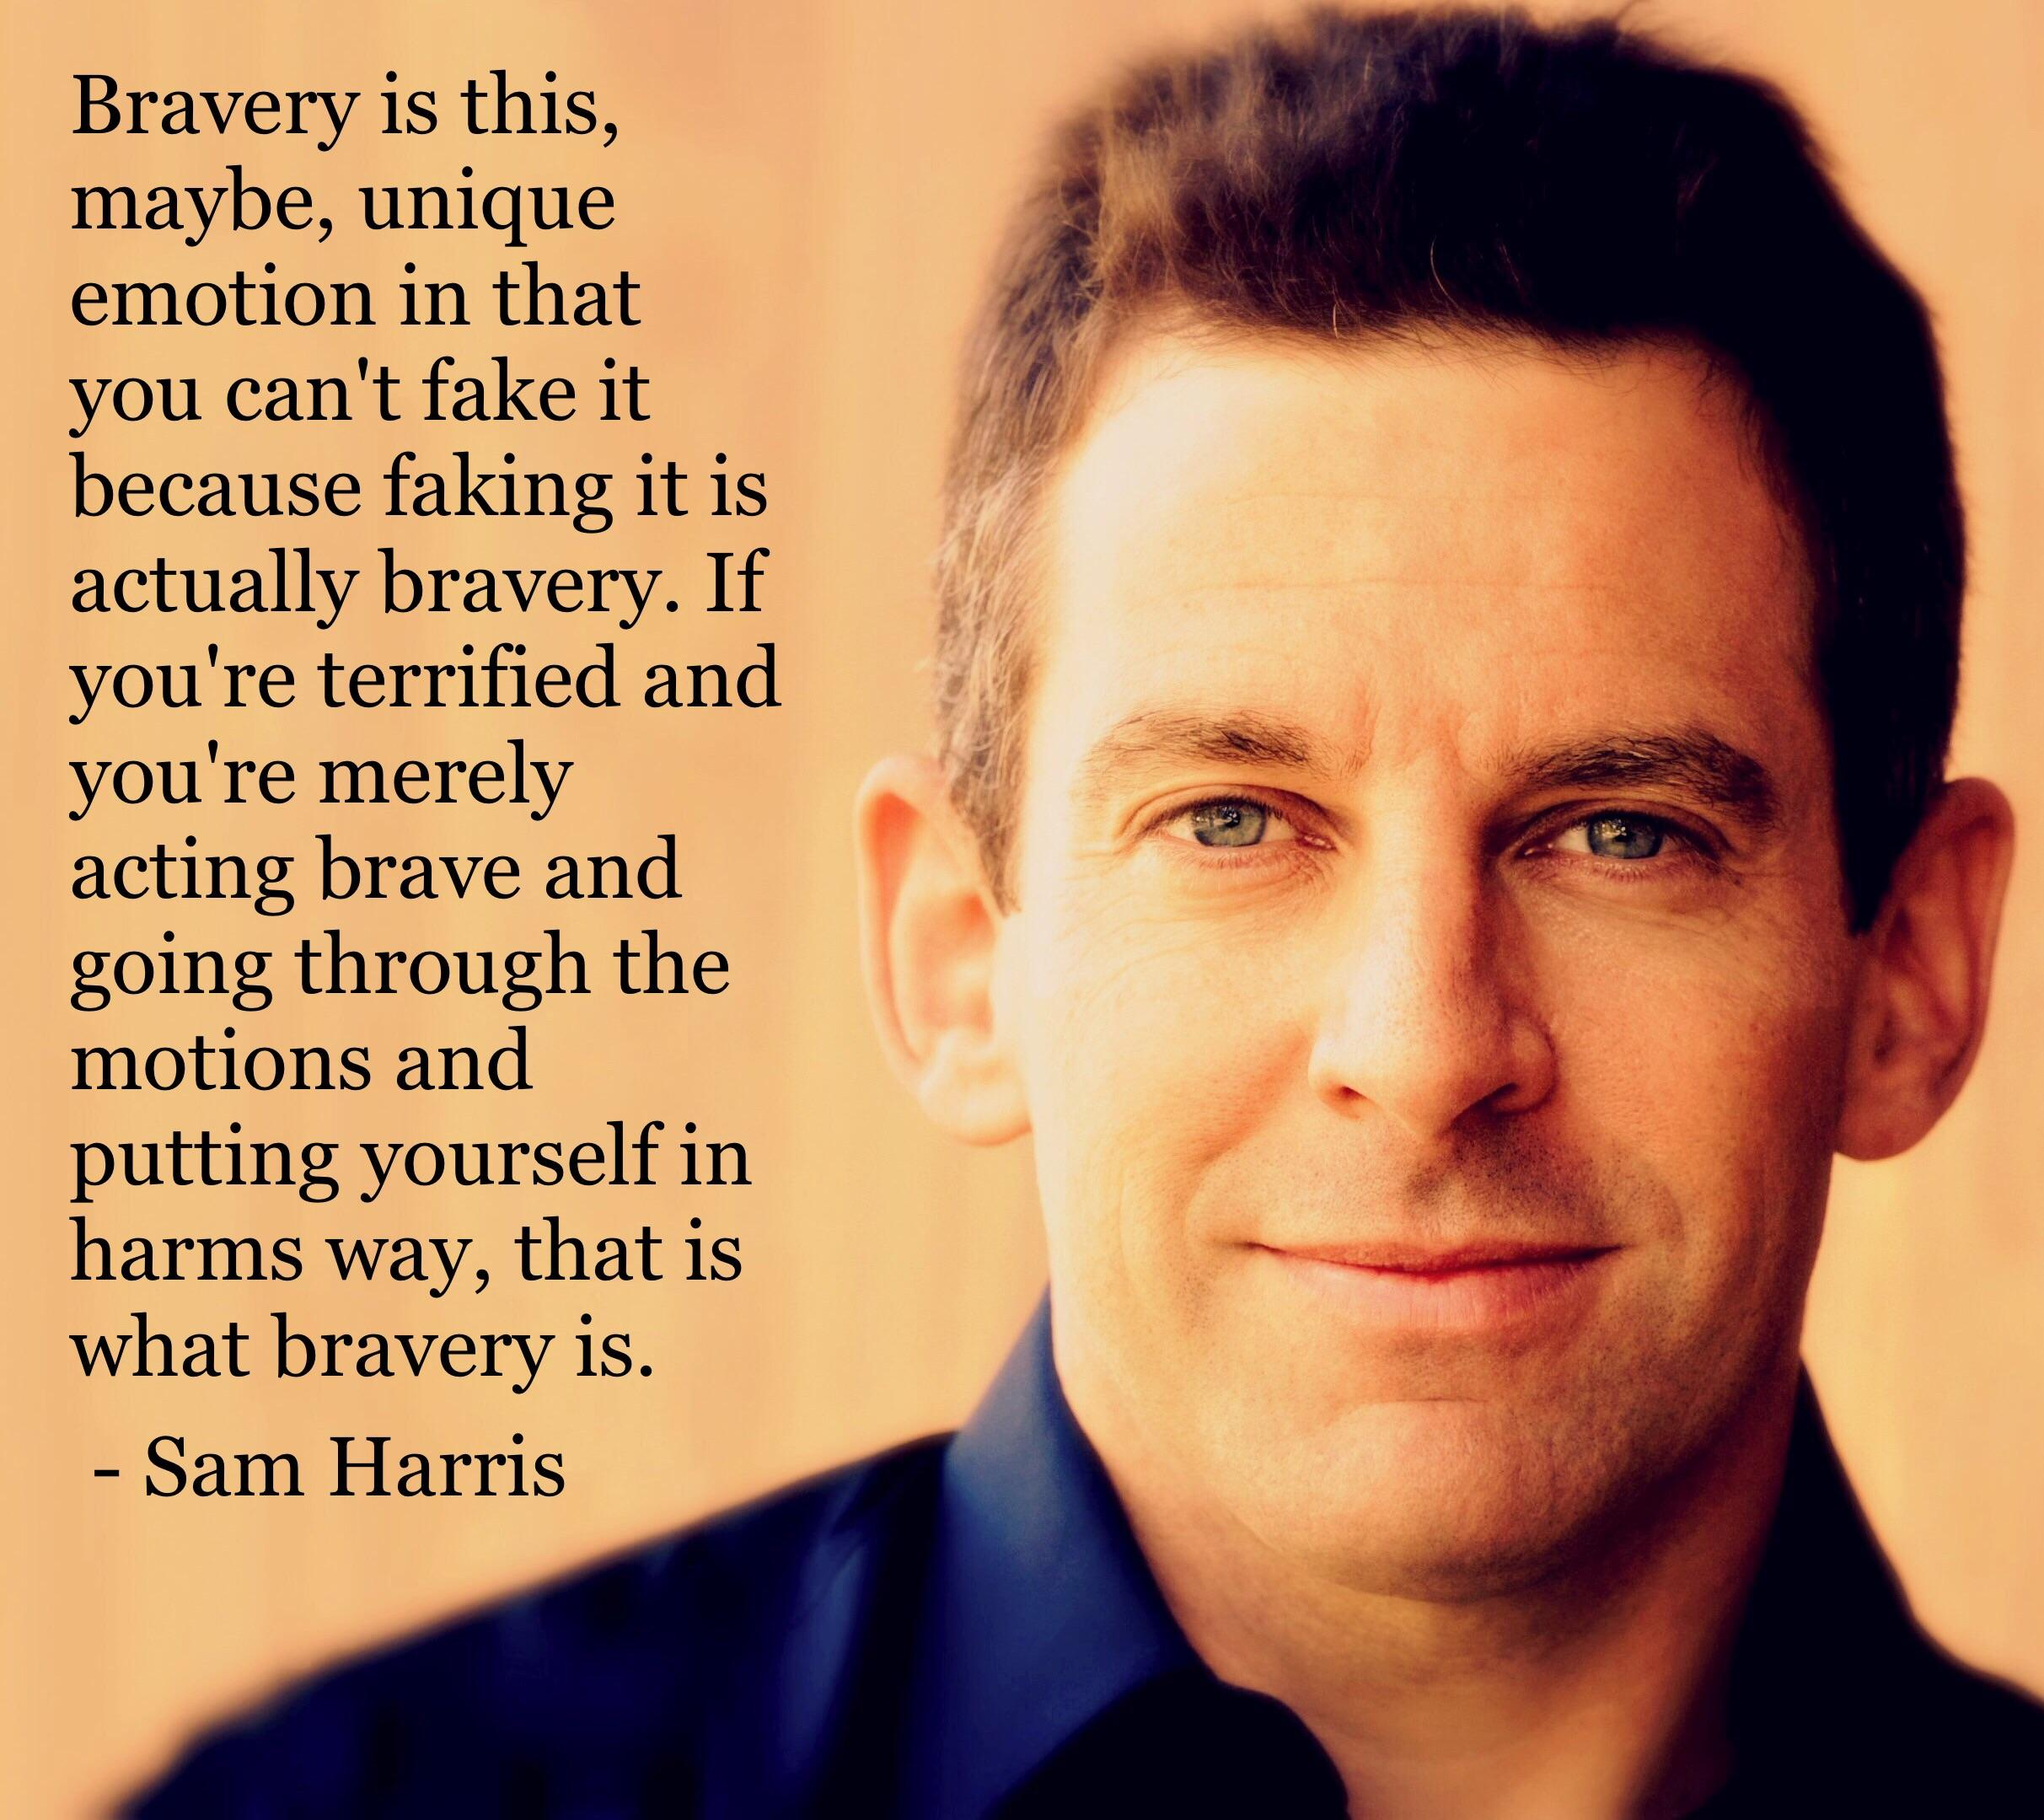 [Image] Sam Harris on Bravery